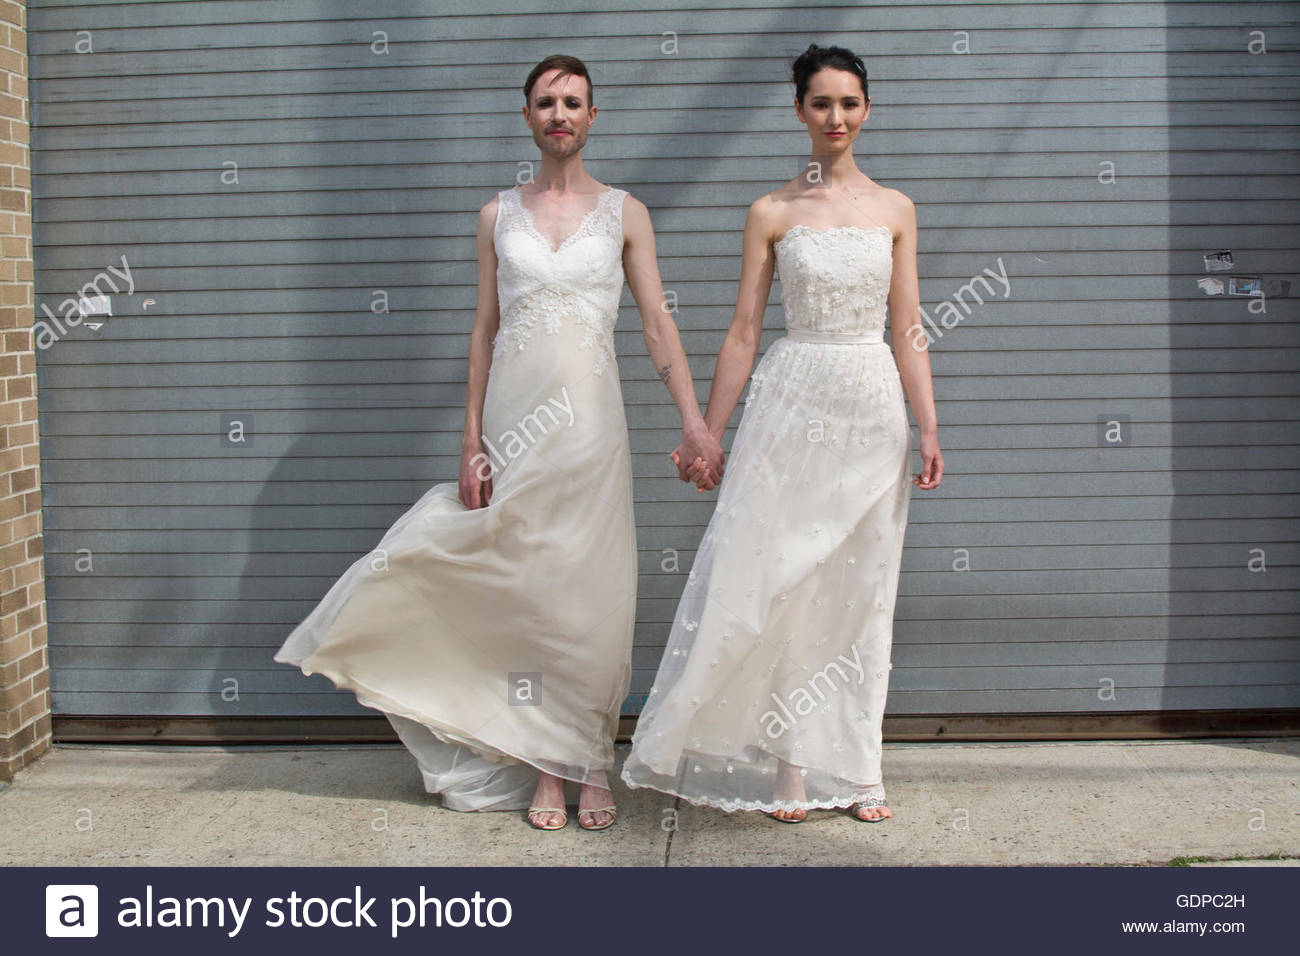 Gender fluid model and female model in couture bridal attire - Stock Image